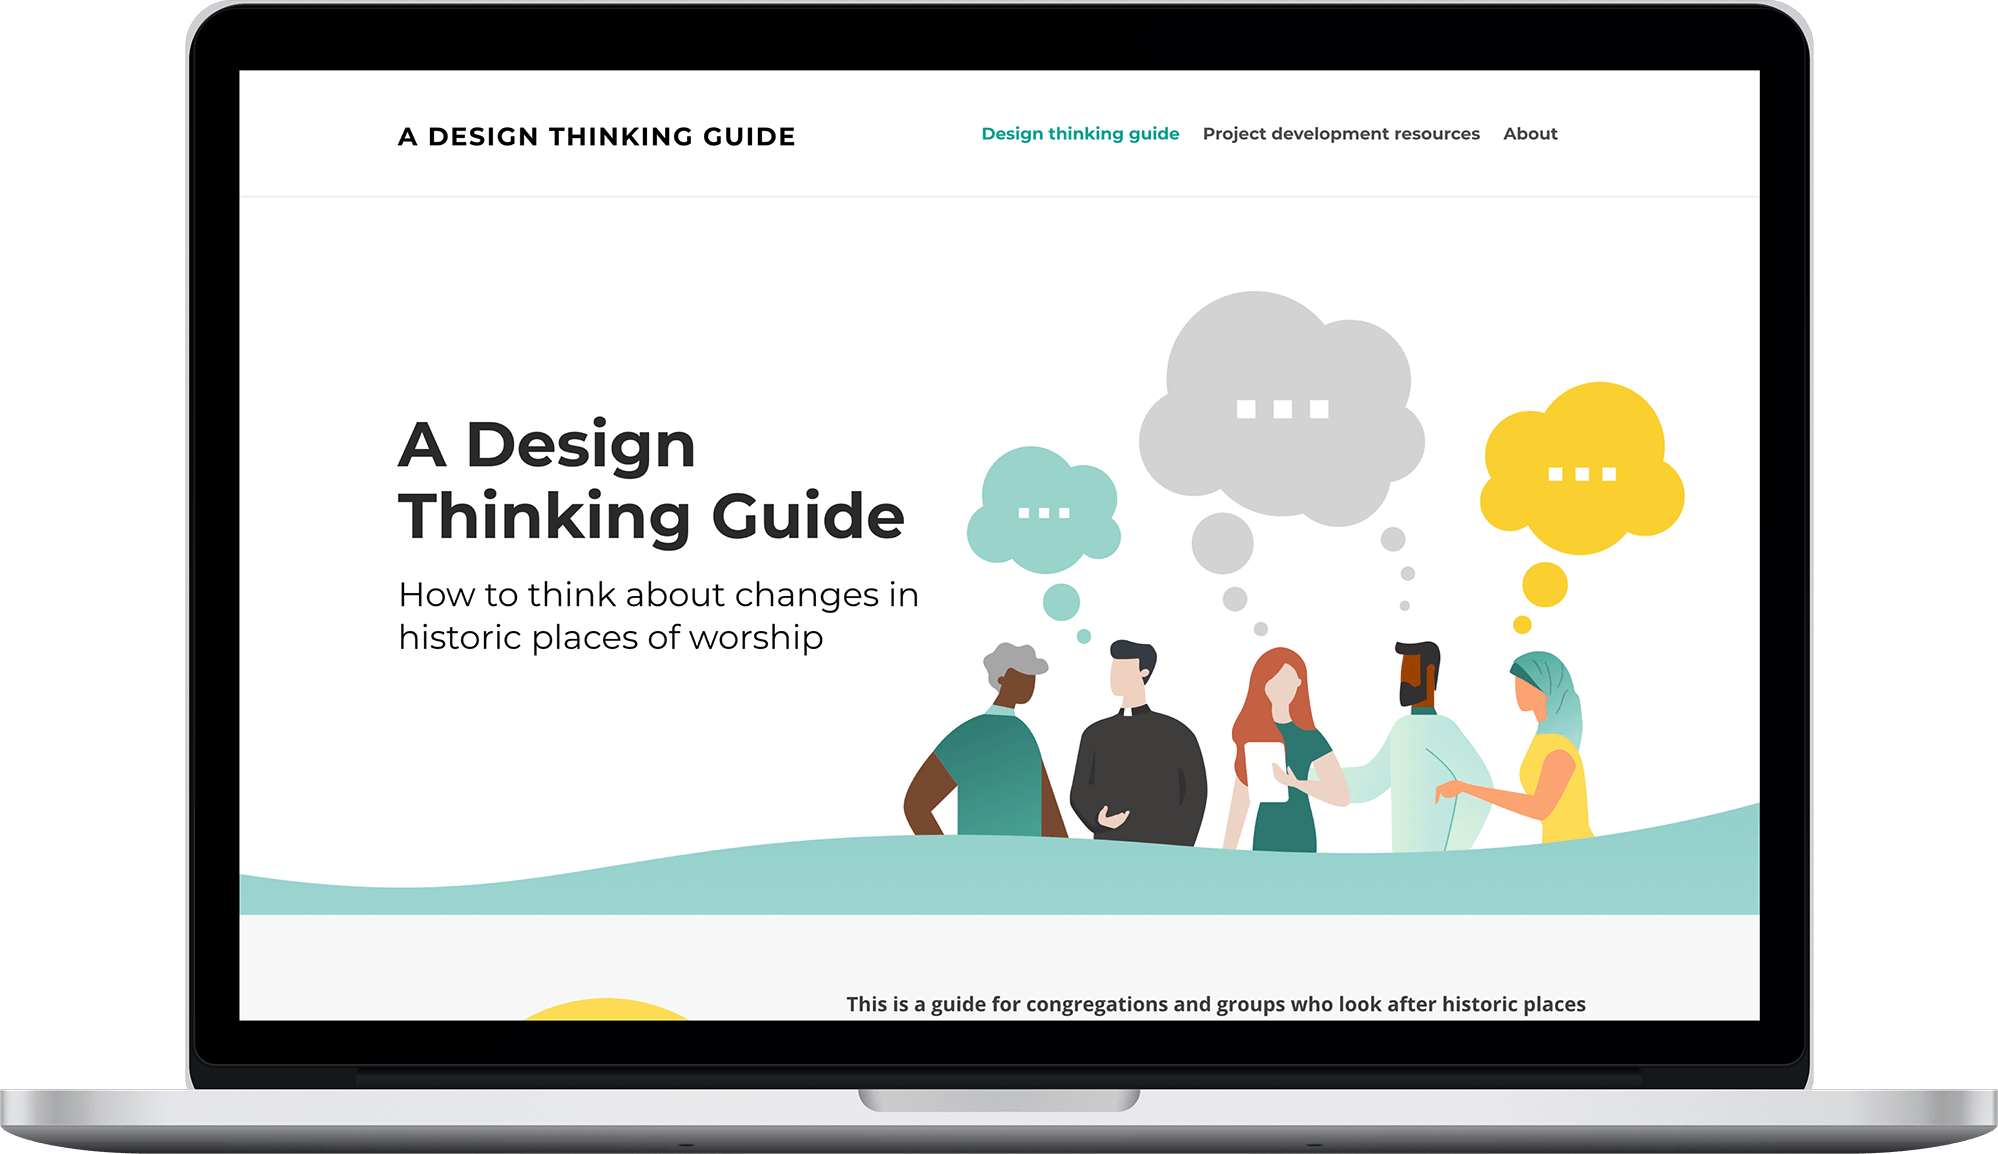 Design Thinking Guide website displayed on a laptop